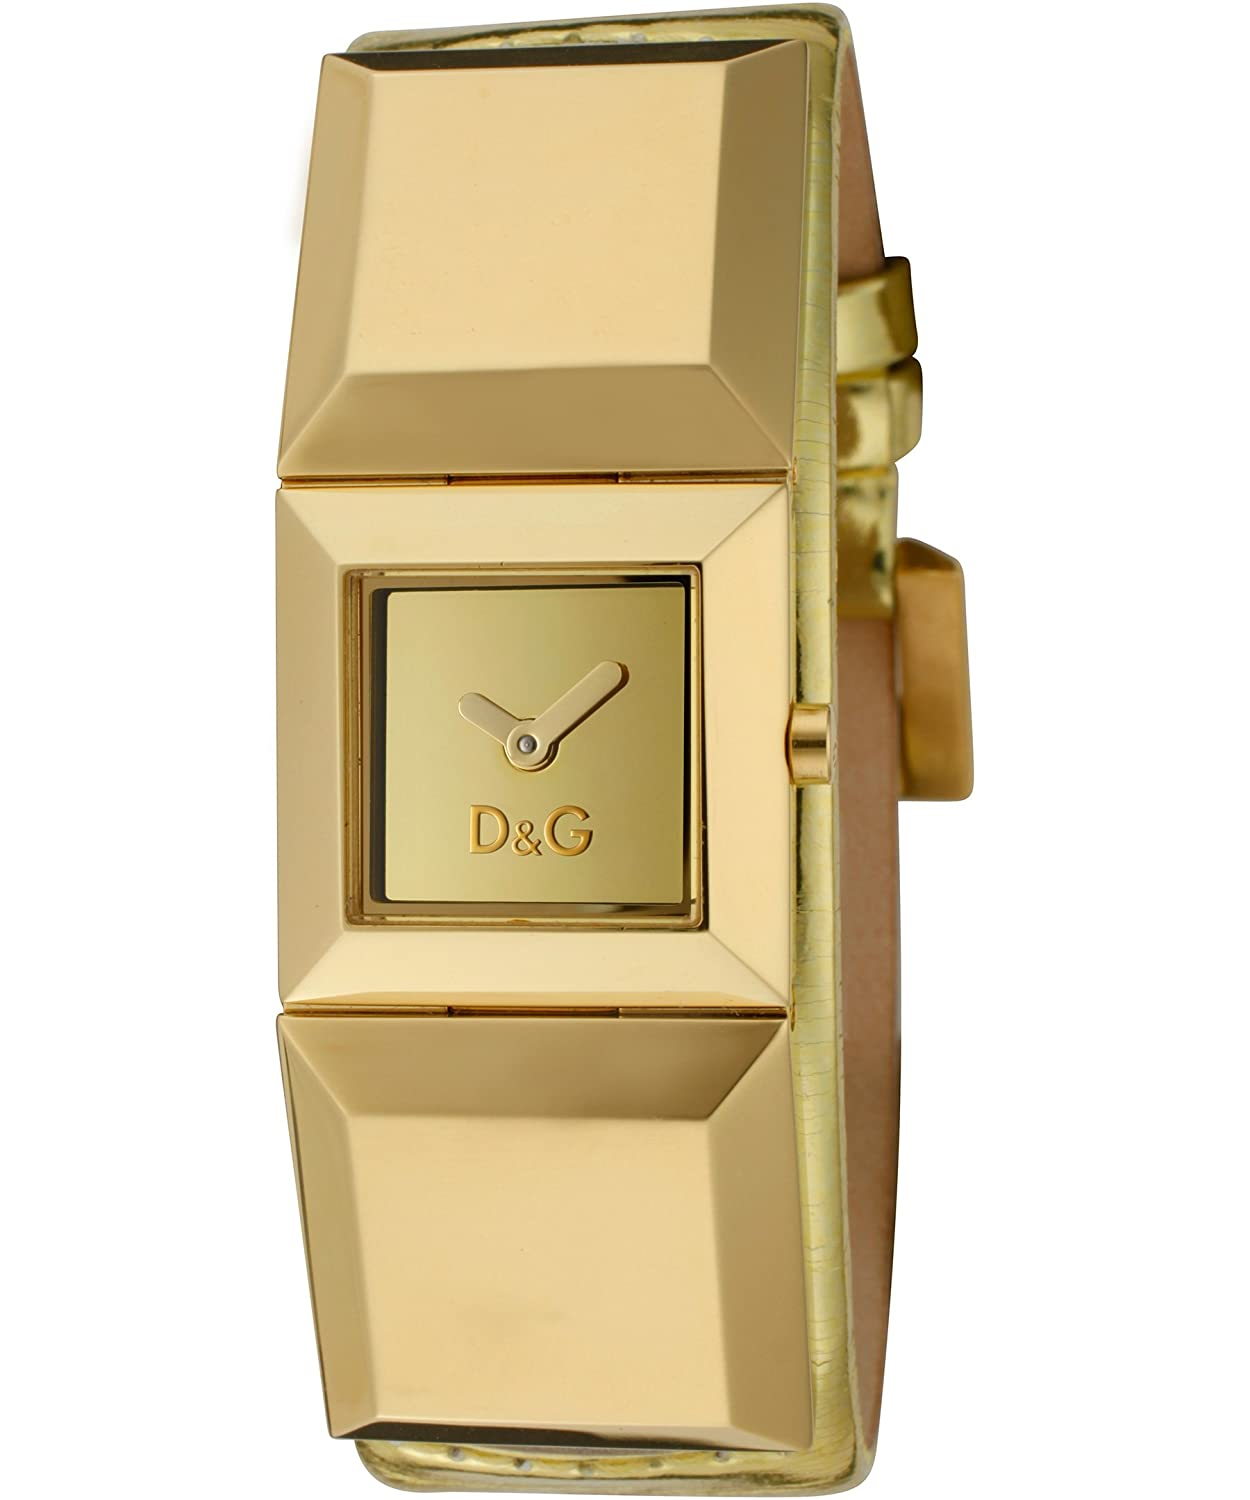 Amazon.com: Dolce & Gabbana D&G Time Watch DANCE DW0271/DW0273, Color:  Gold-Coloured, Size: One Size: Dolce & Gabbana: Watches